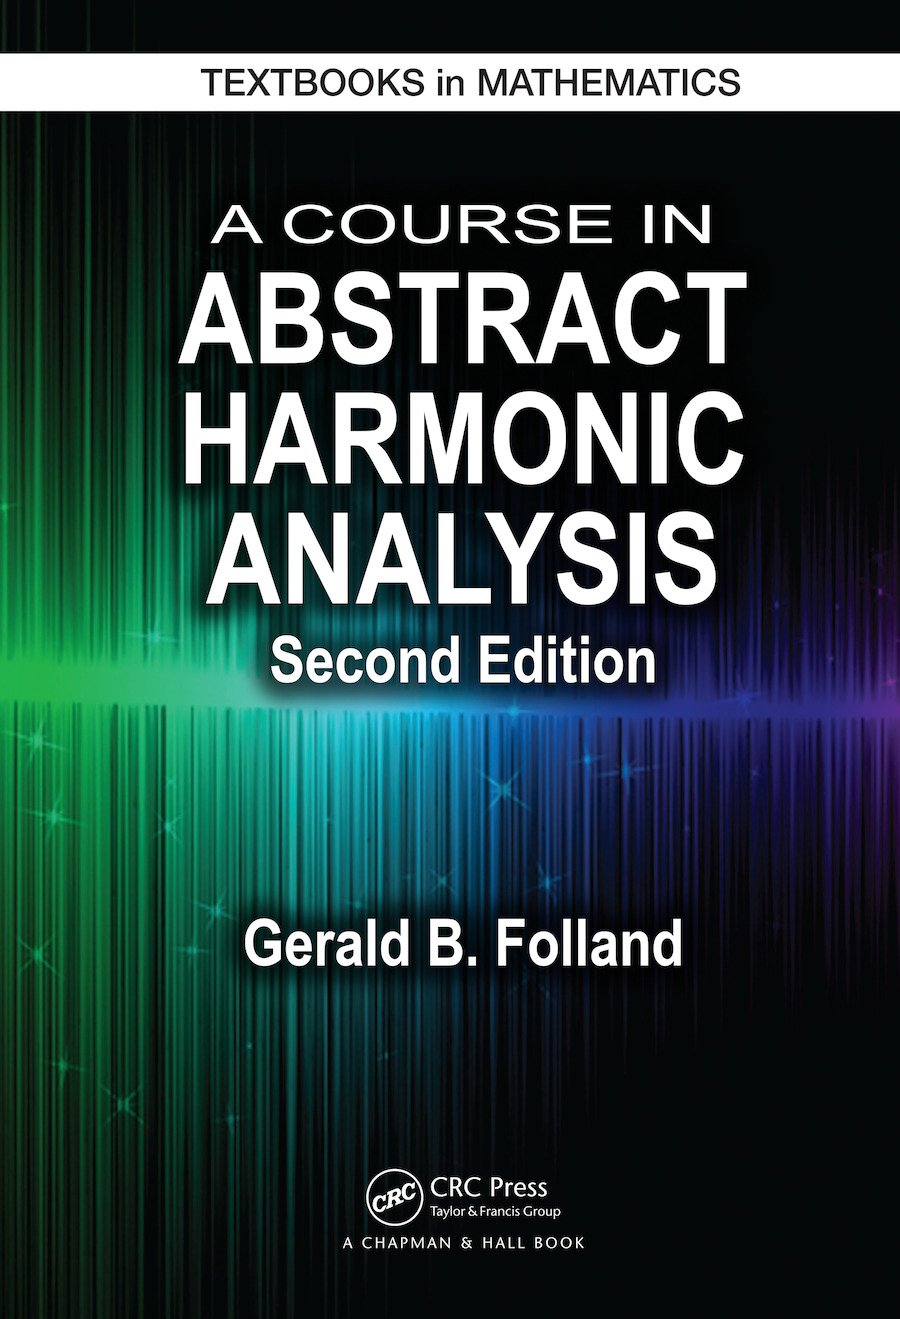 A Course in Abstract Harmonic Analysis